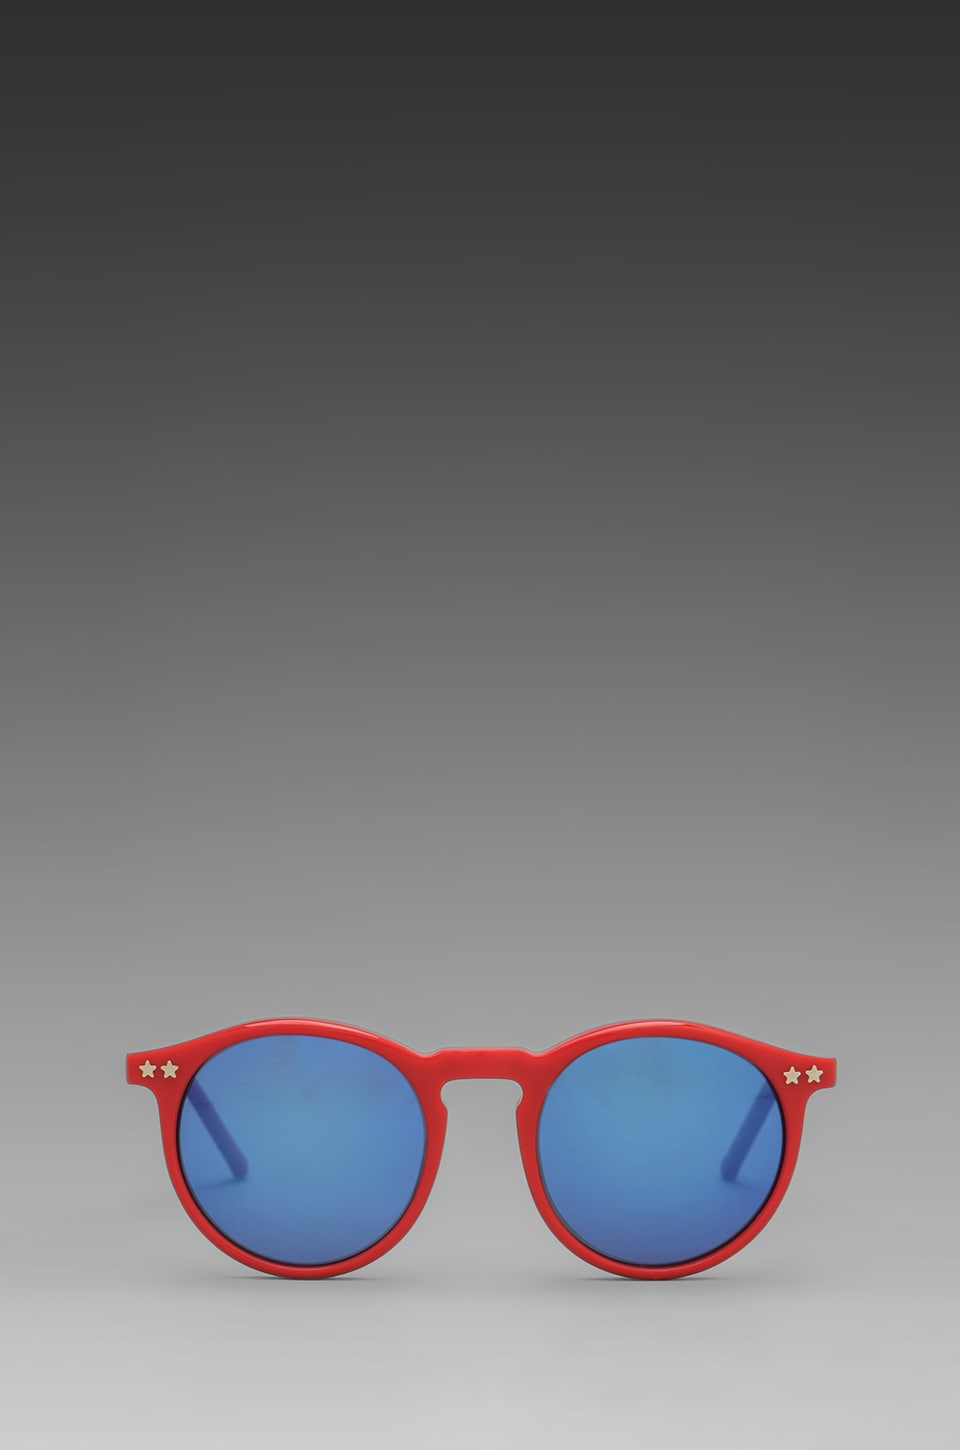 Wildfox Couture Steff Panto Frame Sunglasses in Red/Blue Revo